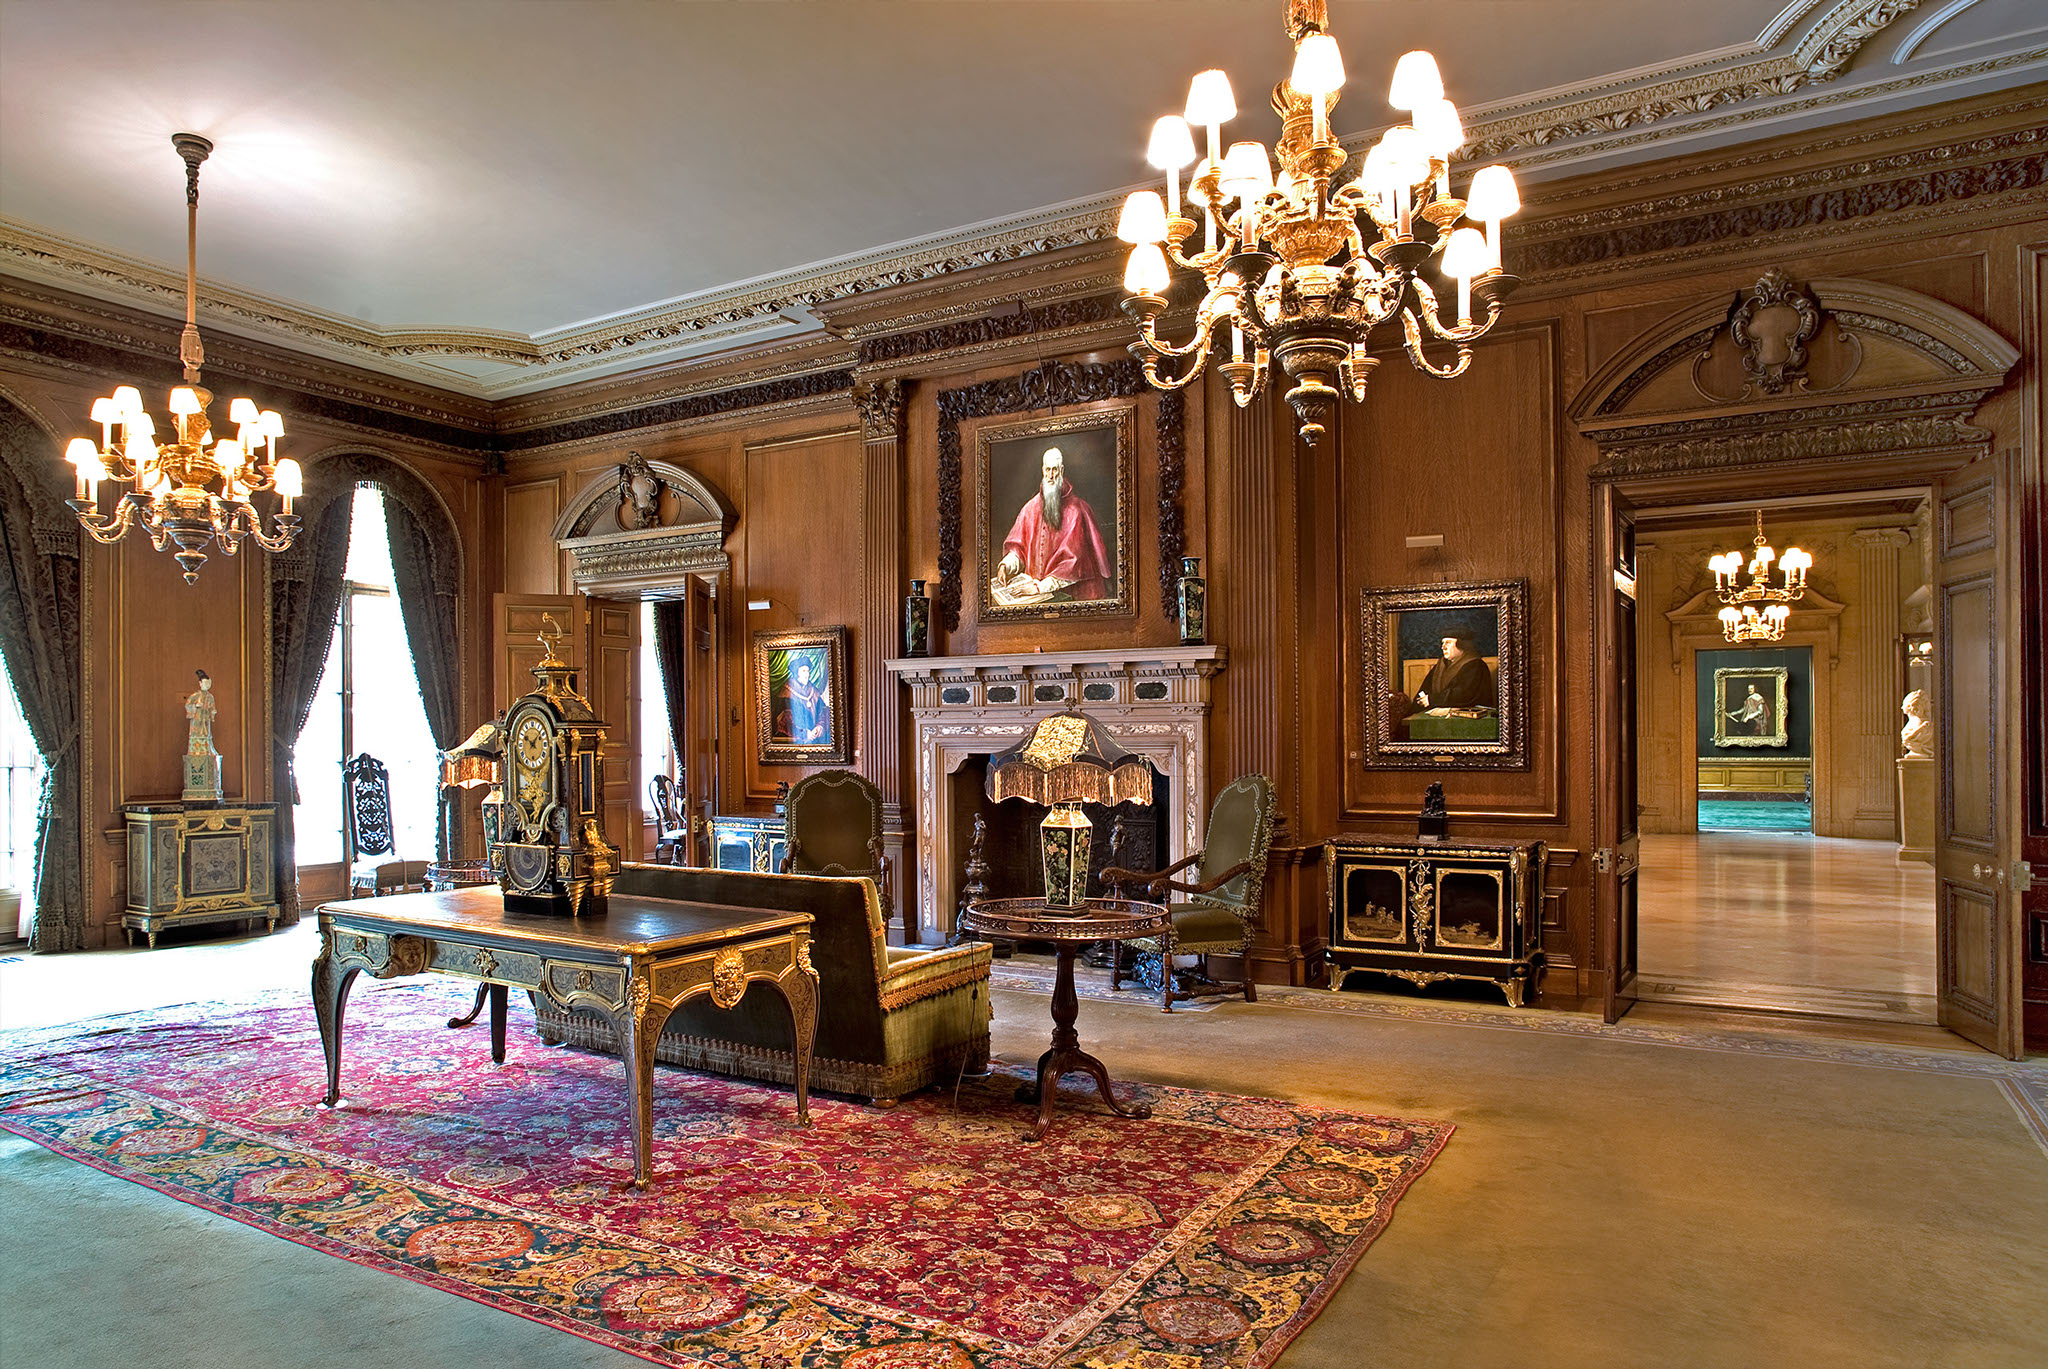 The Living Room of the Frick Collection. Thomas More against Olver Cromwell with El Greco's Saint Jerome in the middle.